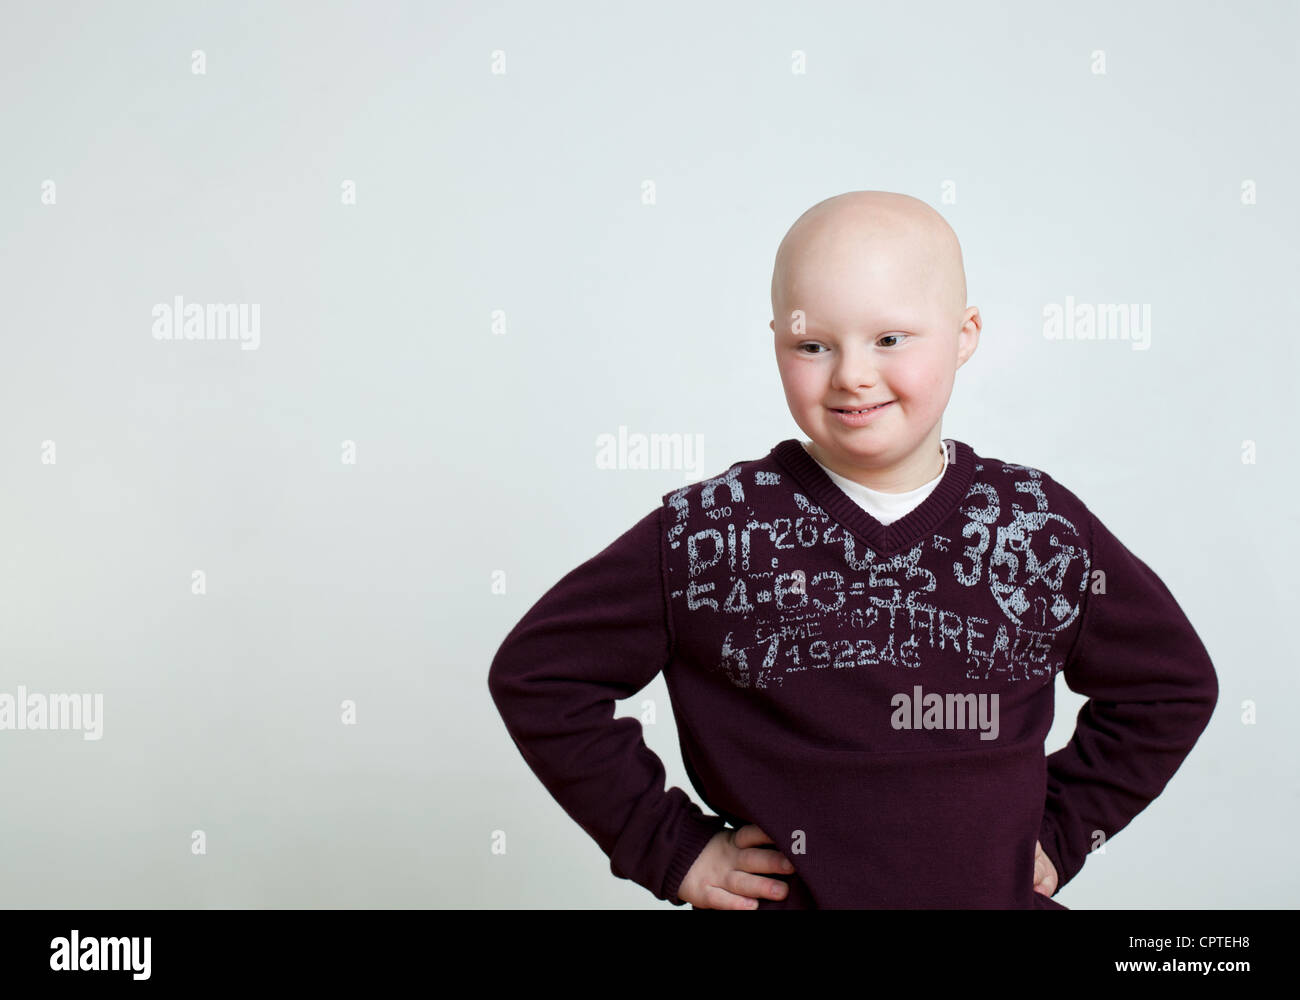 Young boy with Down's Syndrome - Stock Image